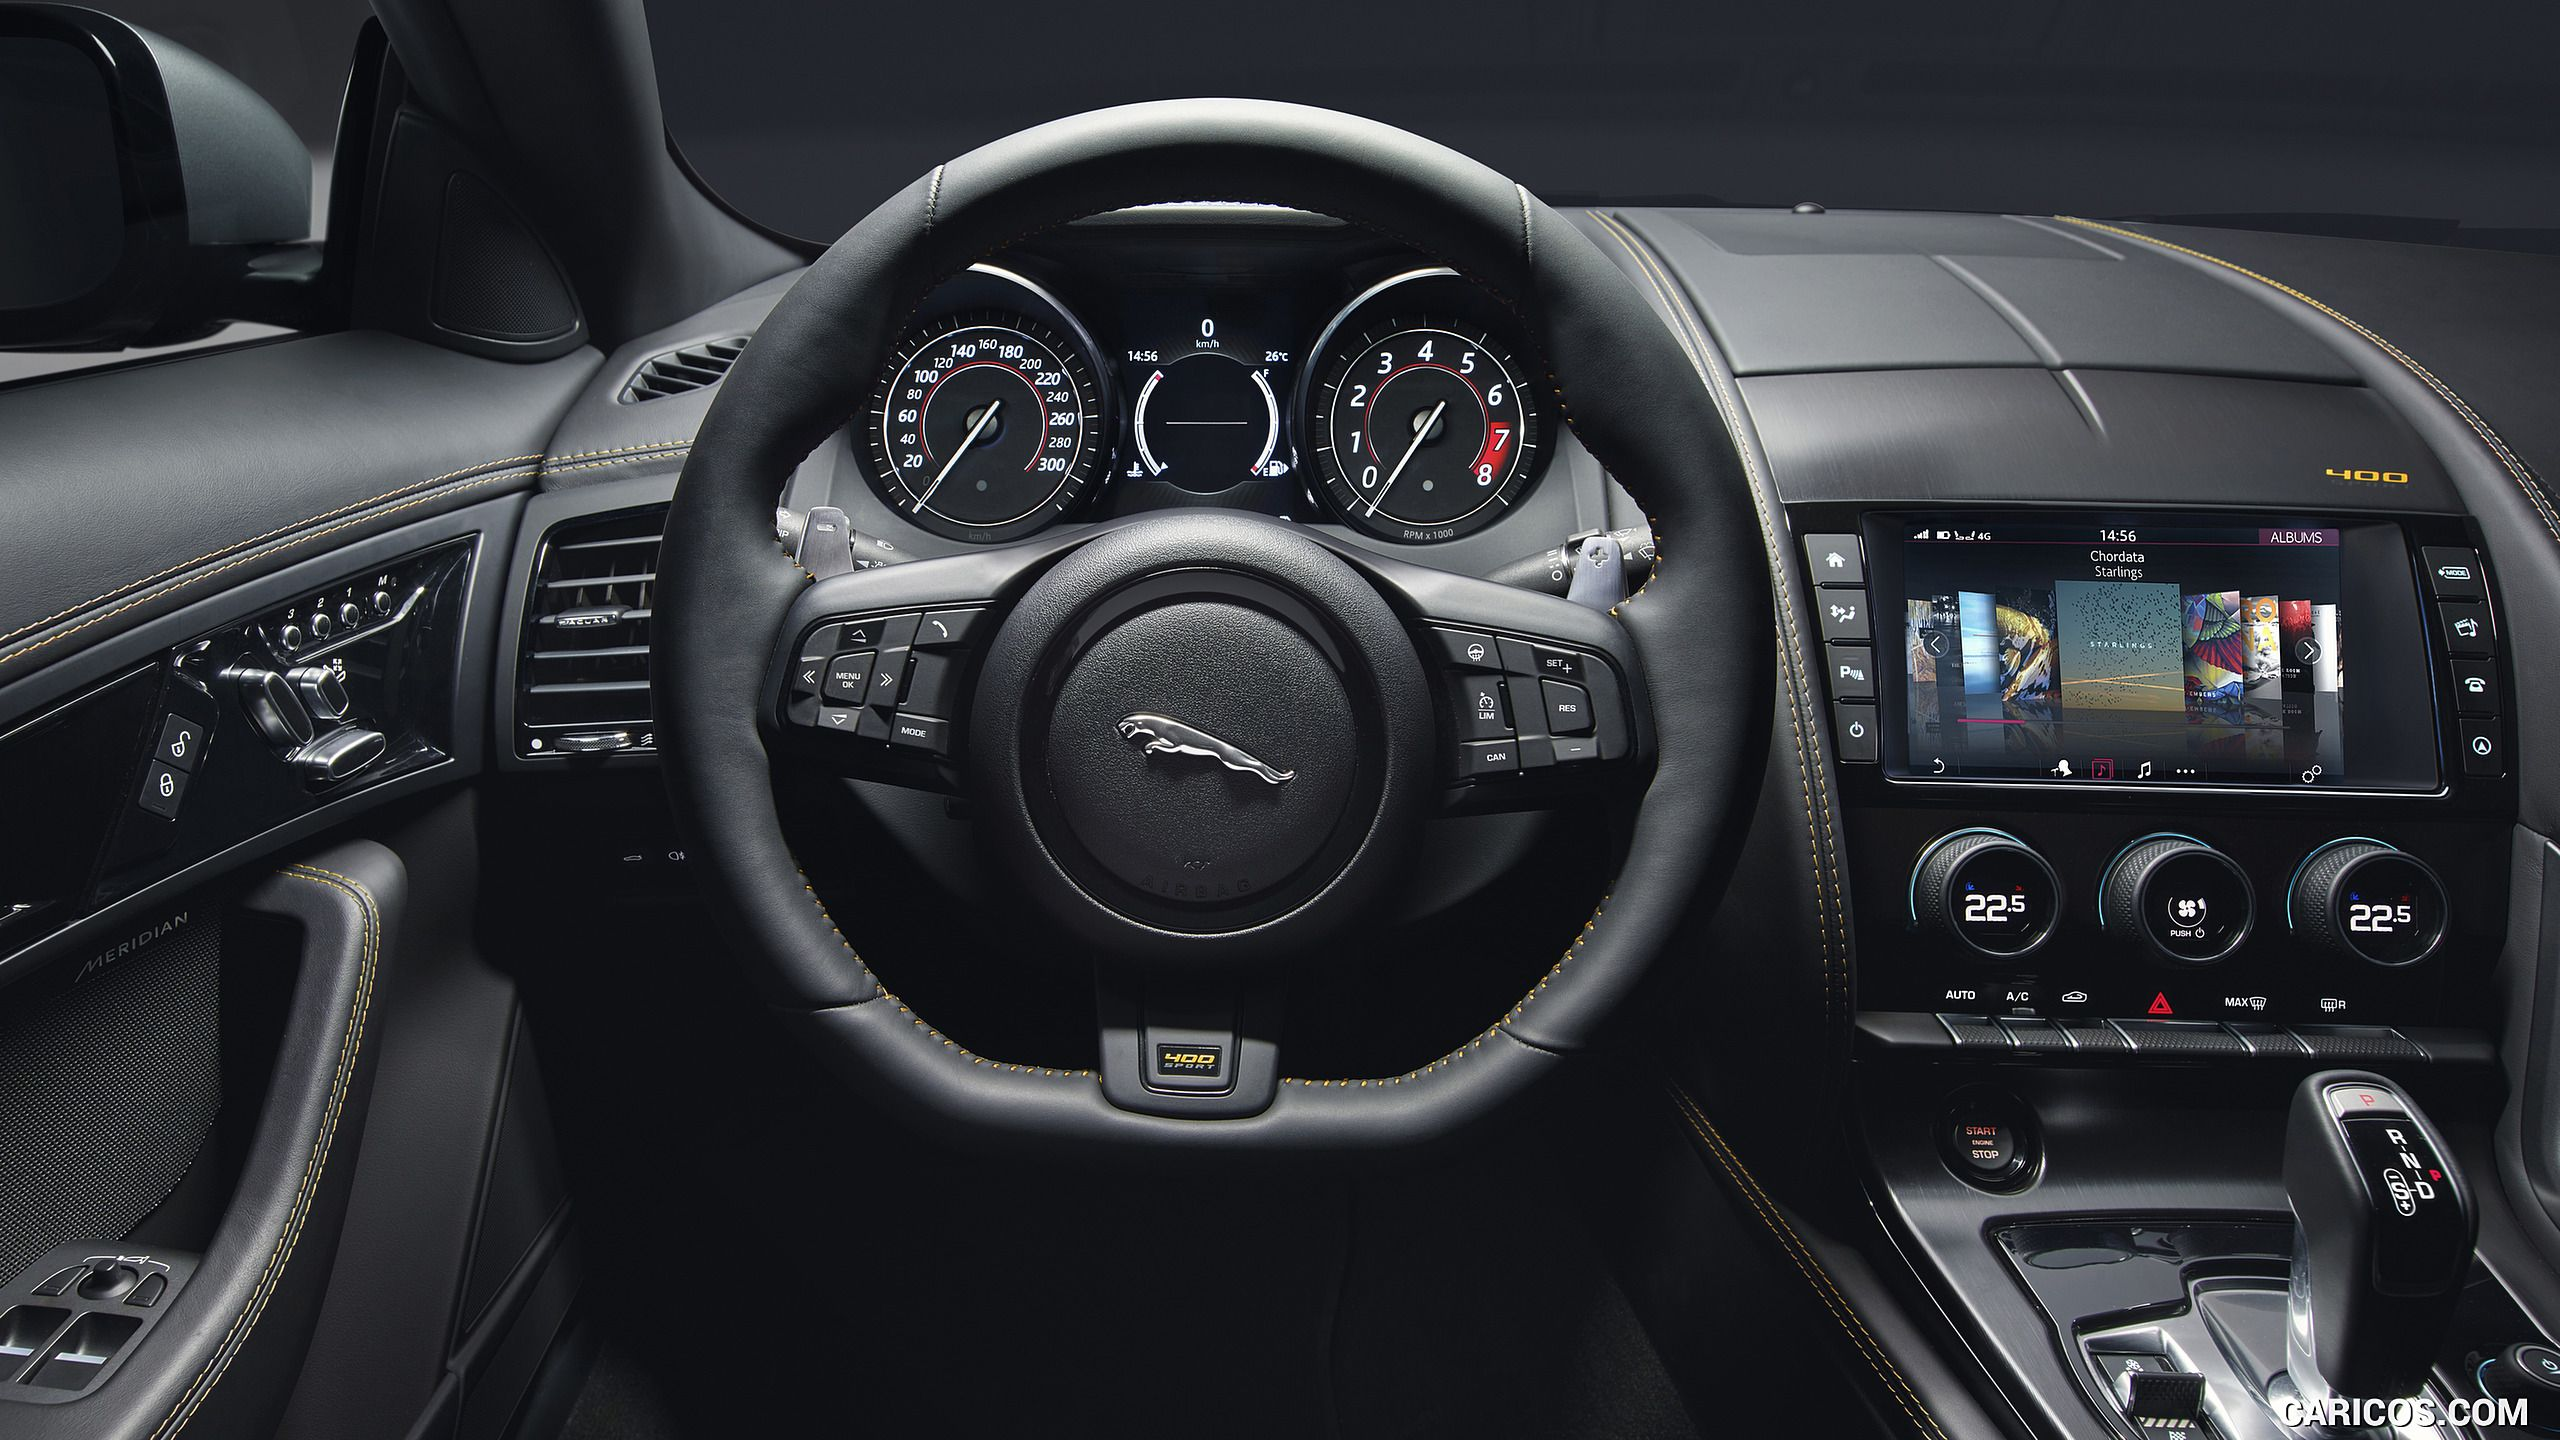 2018 Jaguar F Type Coupe And Convertible Wallpaper Jaguar F Type Jaguar Jaguar Car